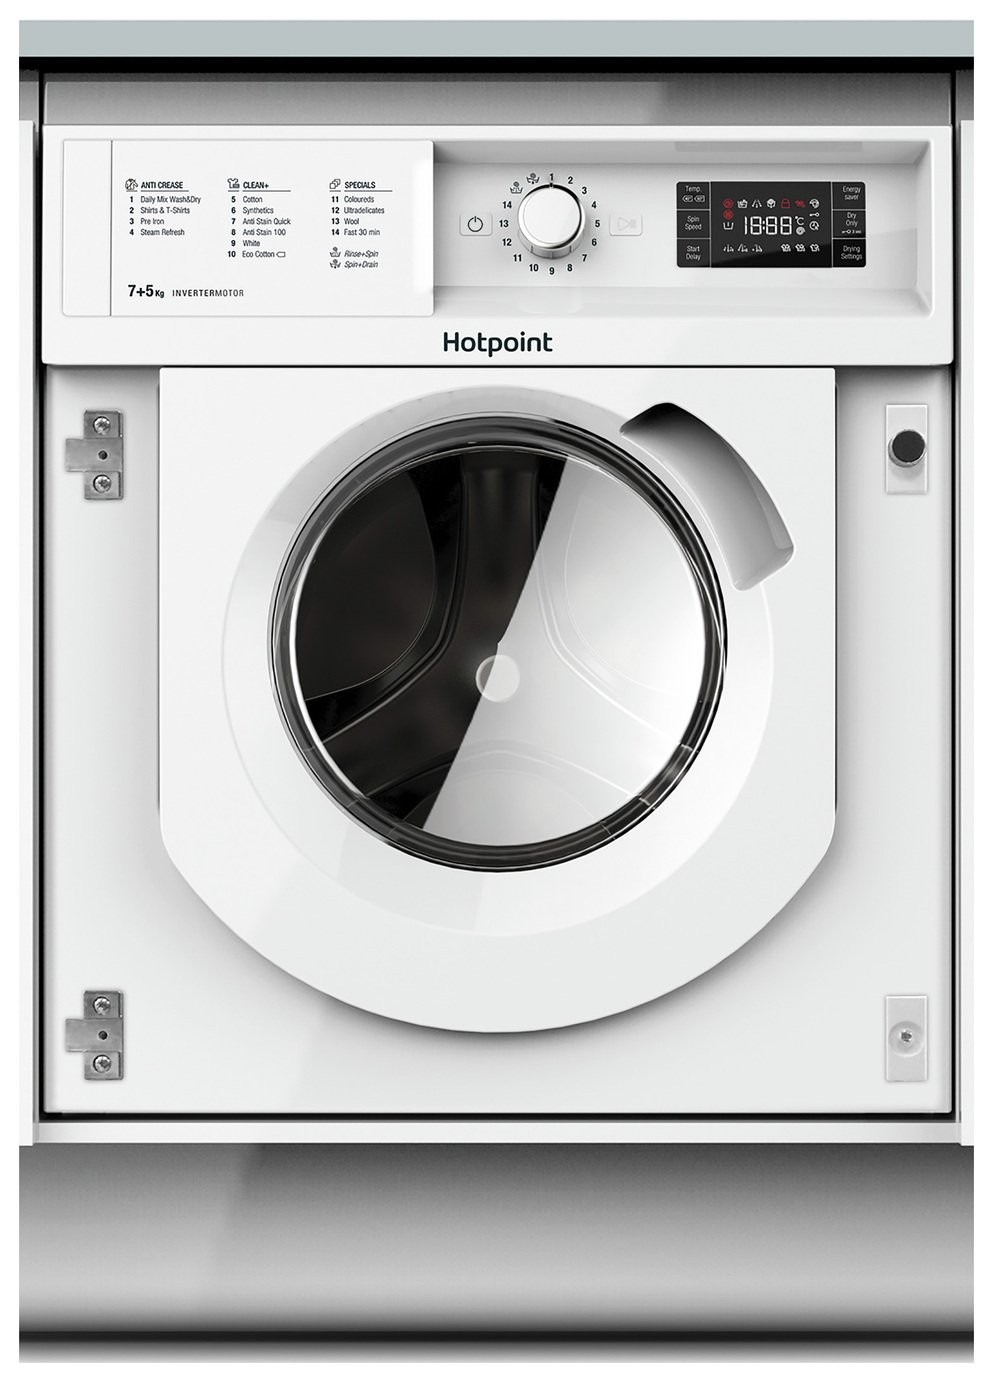 Hotpoint BIWDHG7148UK Integrated 7KG 1400 Washer Dryer review